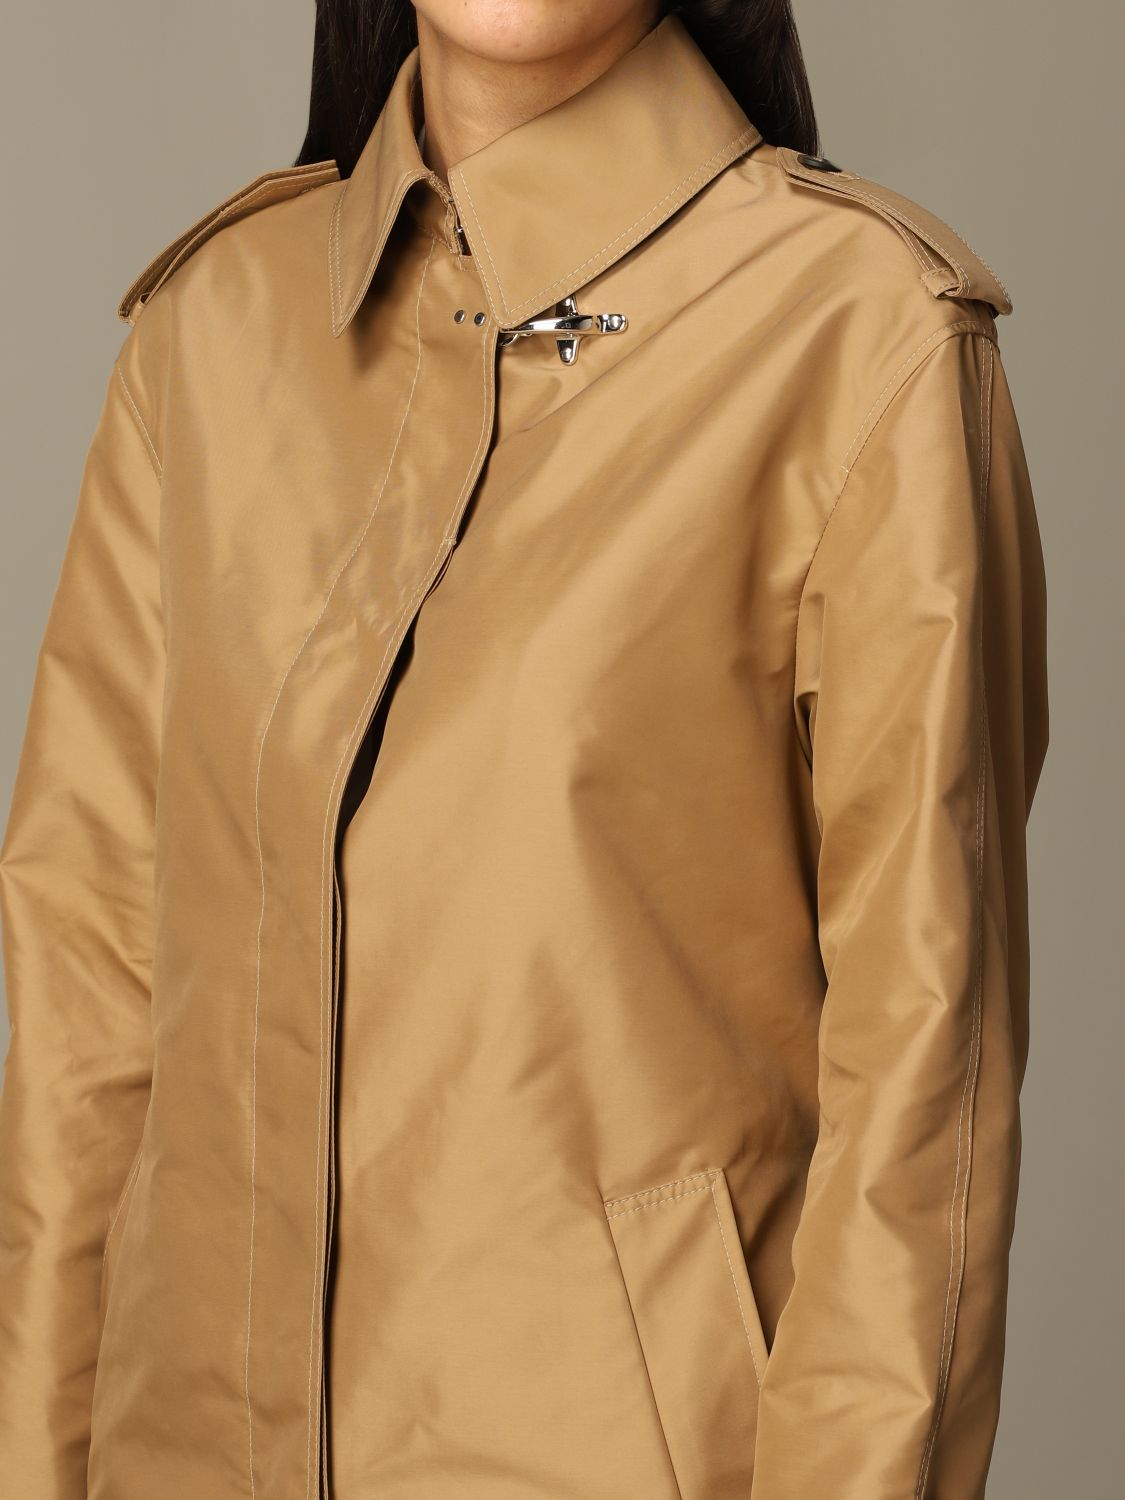 Classic Fay coat with frog biscuit 3